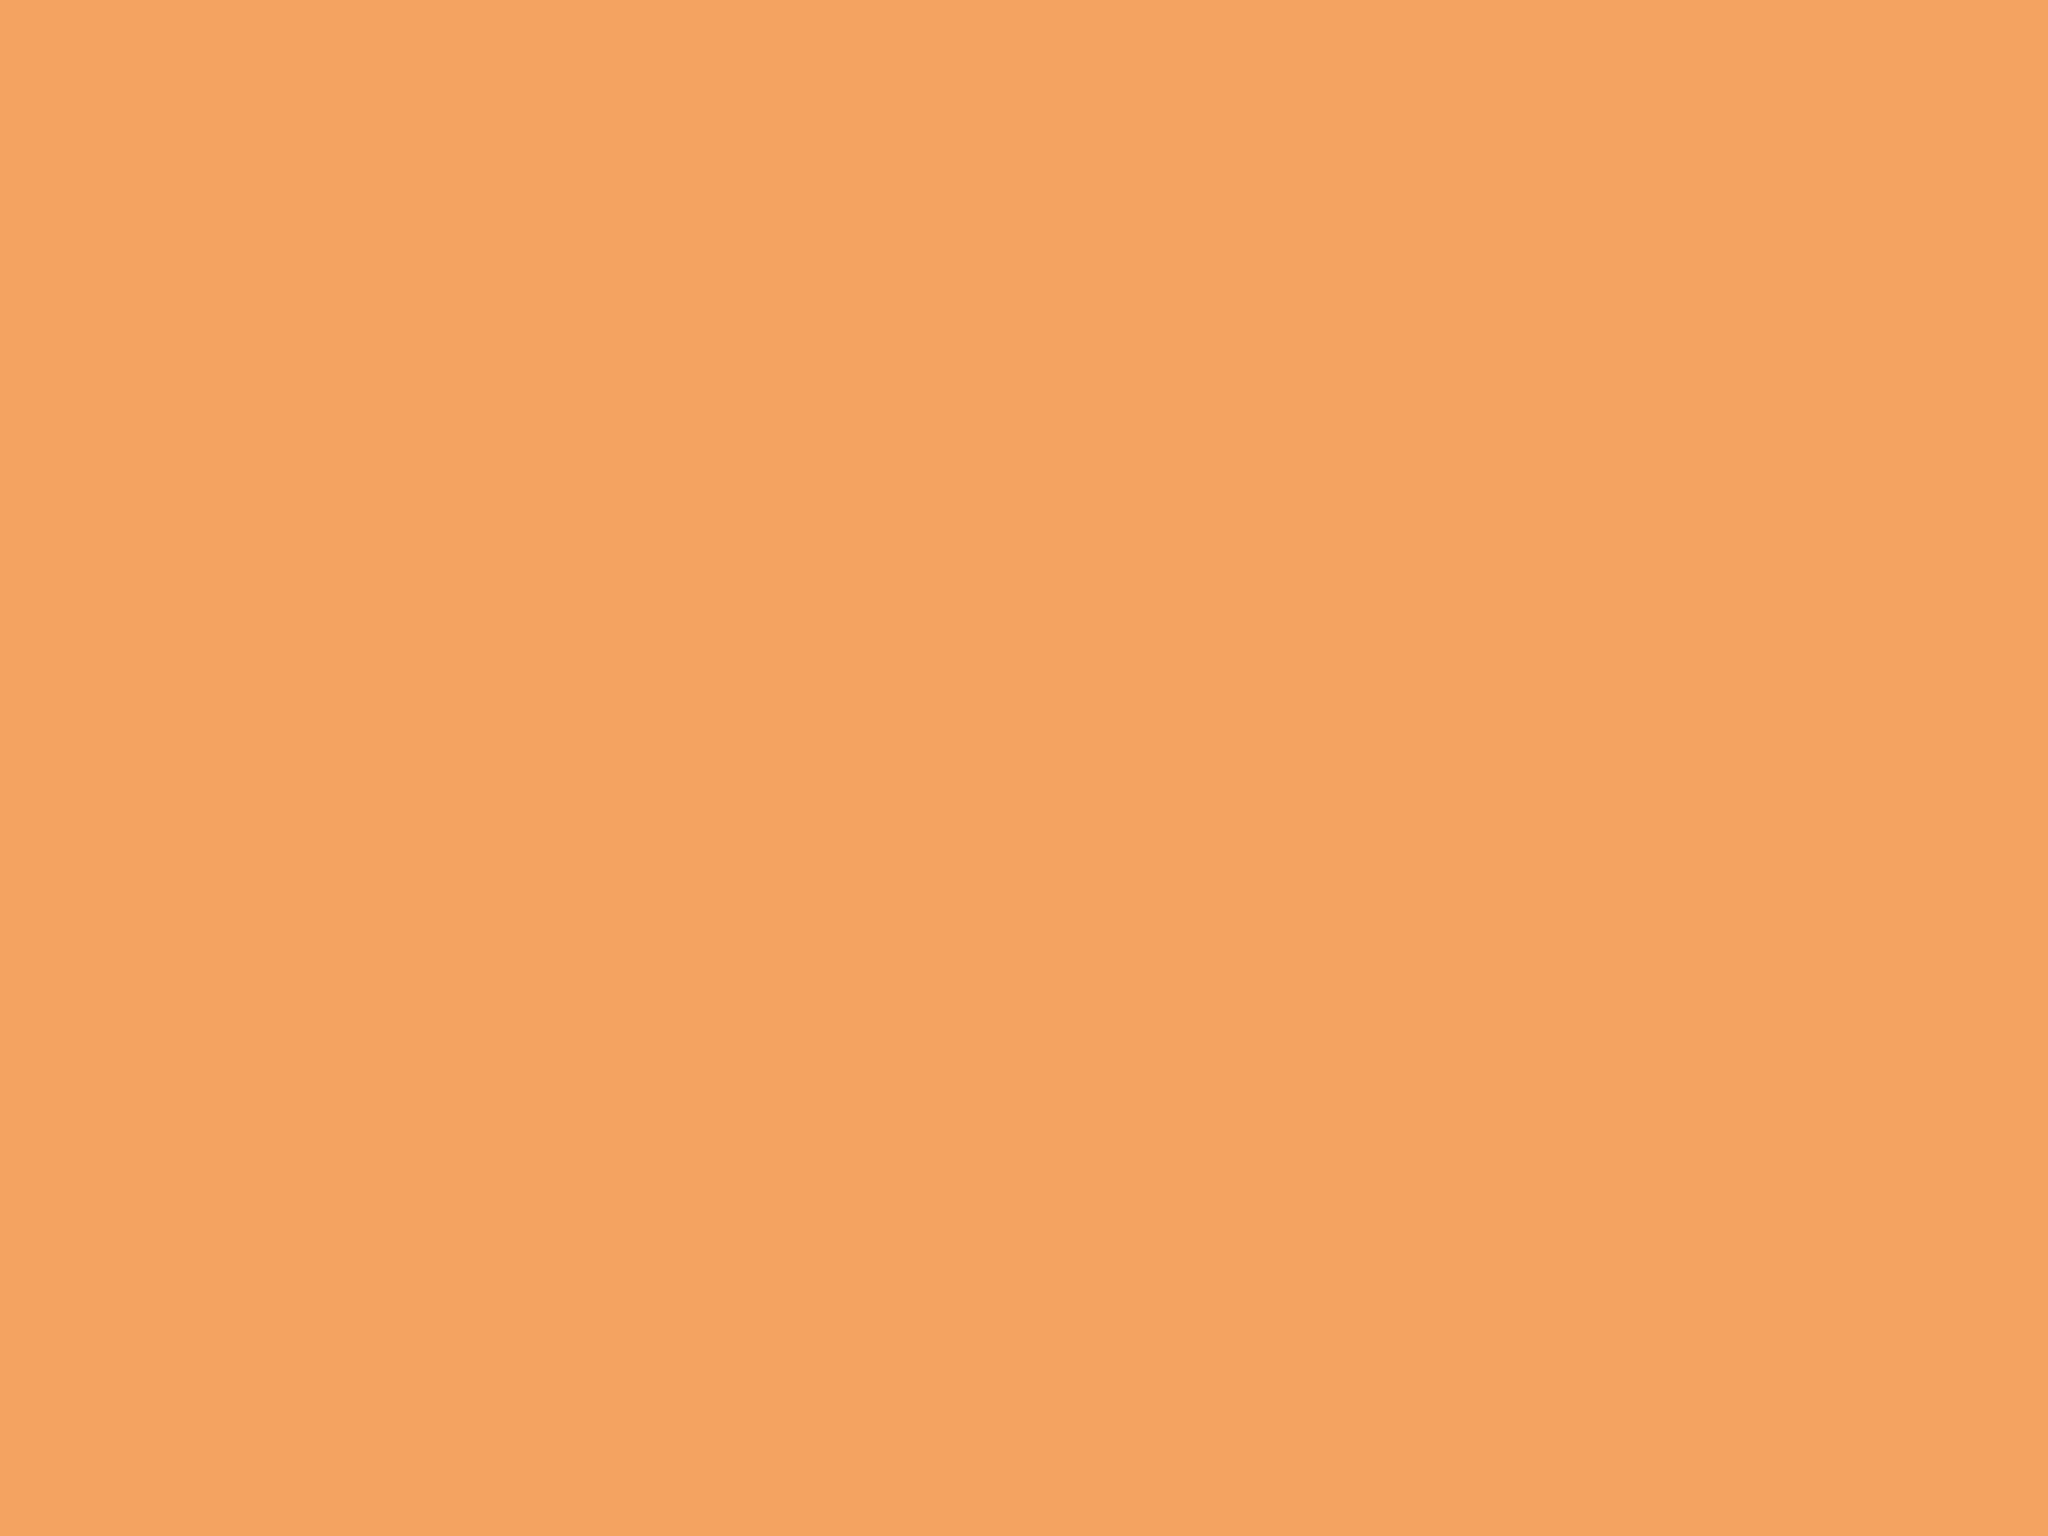 2048x1536 Sandy Brown Solid Color Background